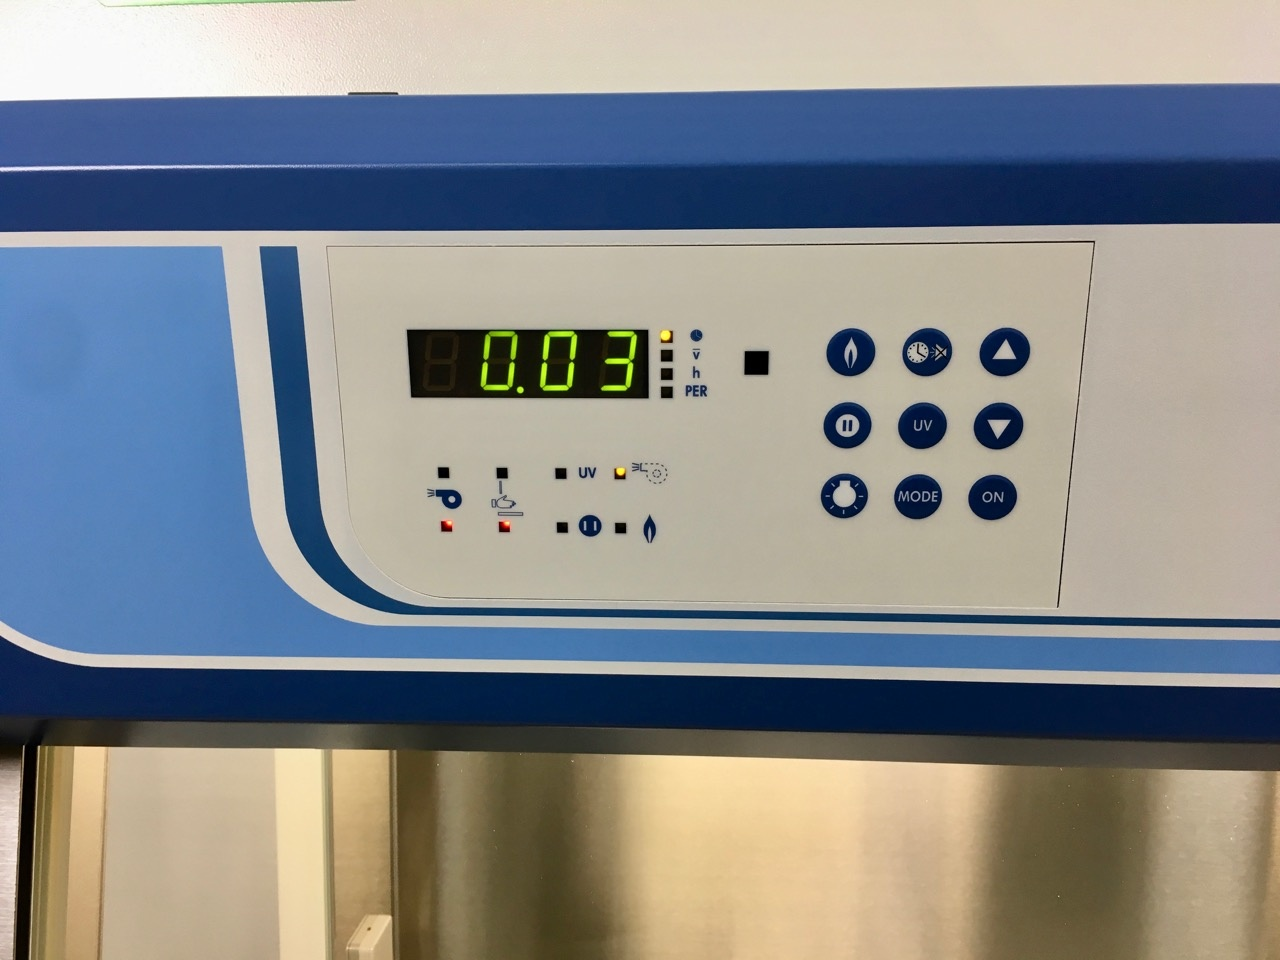 Thermo Scientific Thermo Safe 2020 0.9 Sicherheitswerkbank